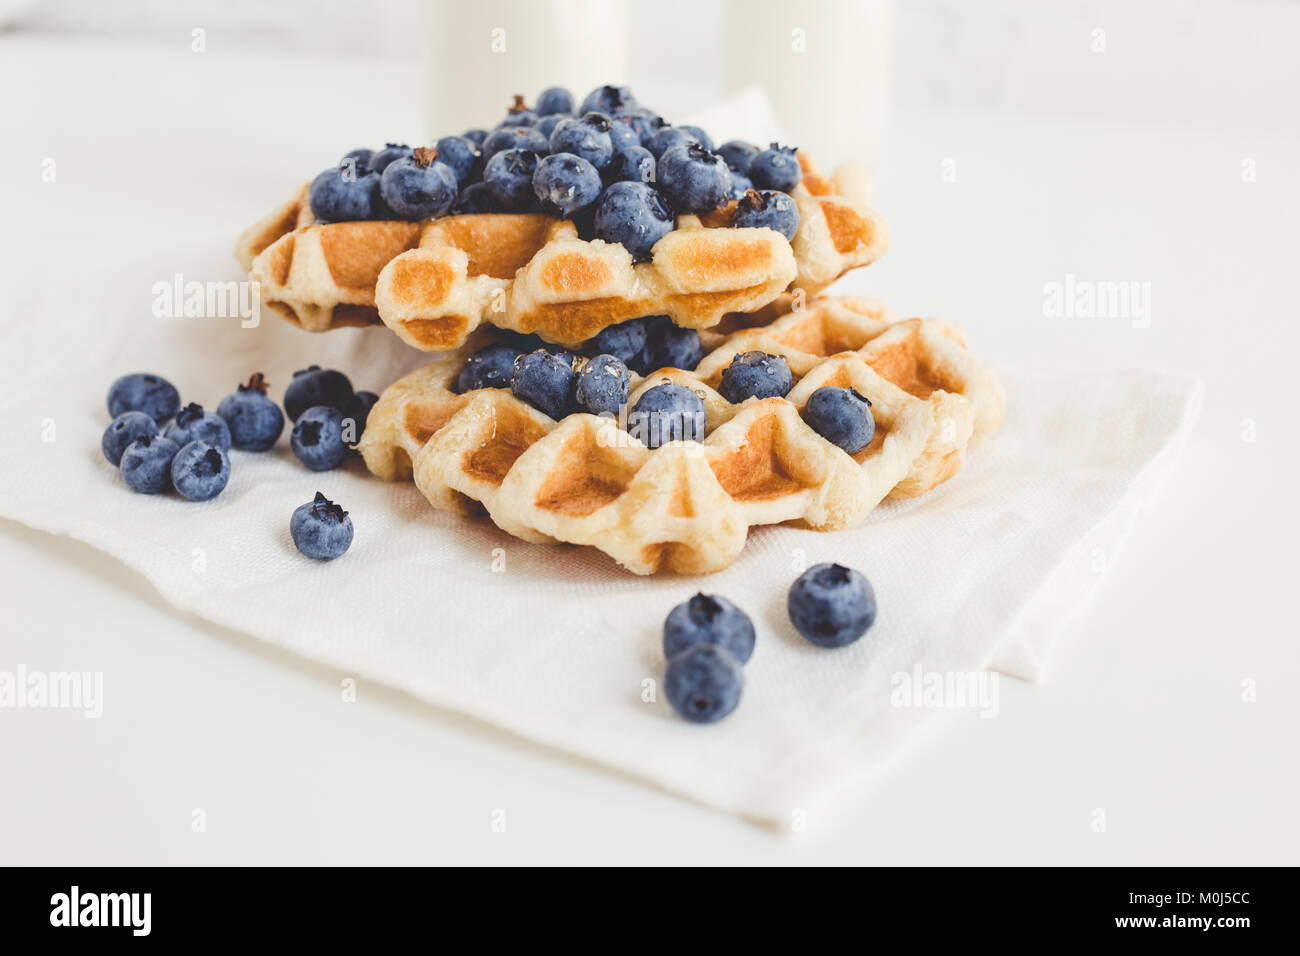 delicious waffles with blueberries for breakfast - Stock Image